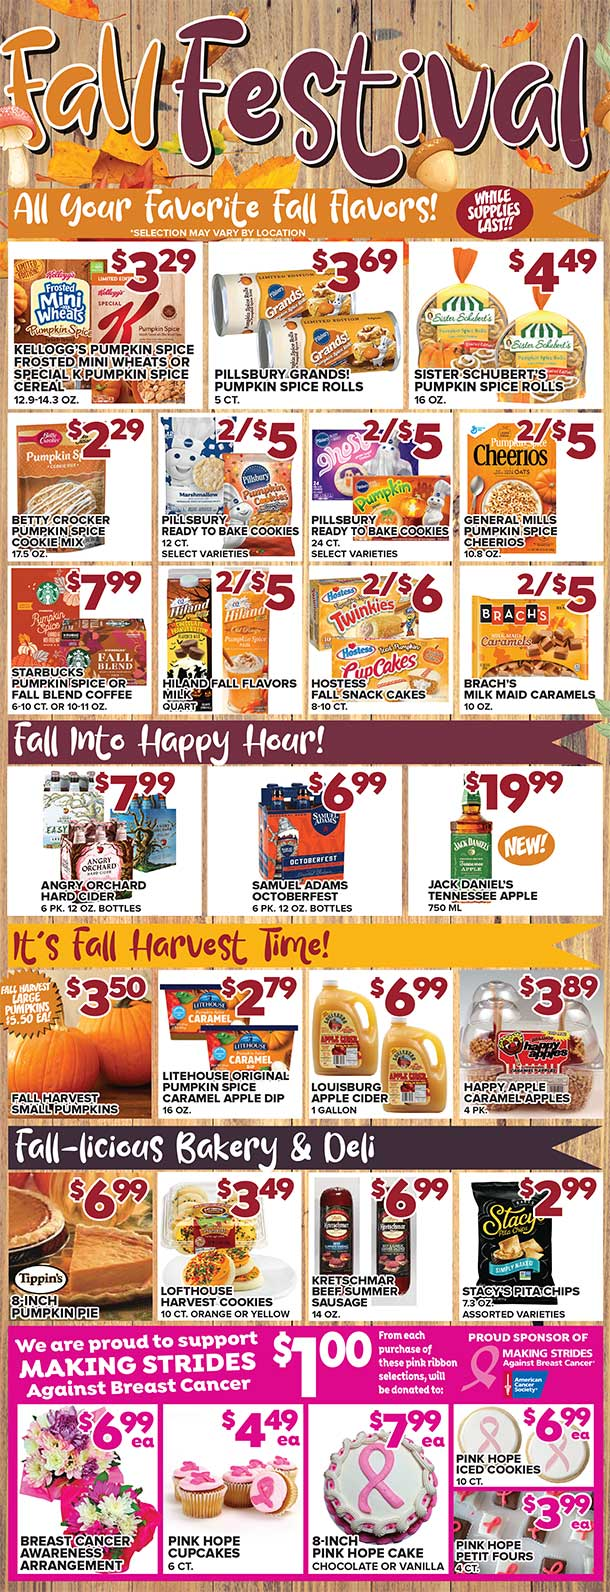 Fall Festival Sale - All Of Your Fall Favorites